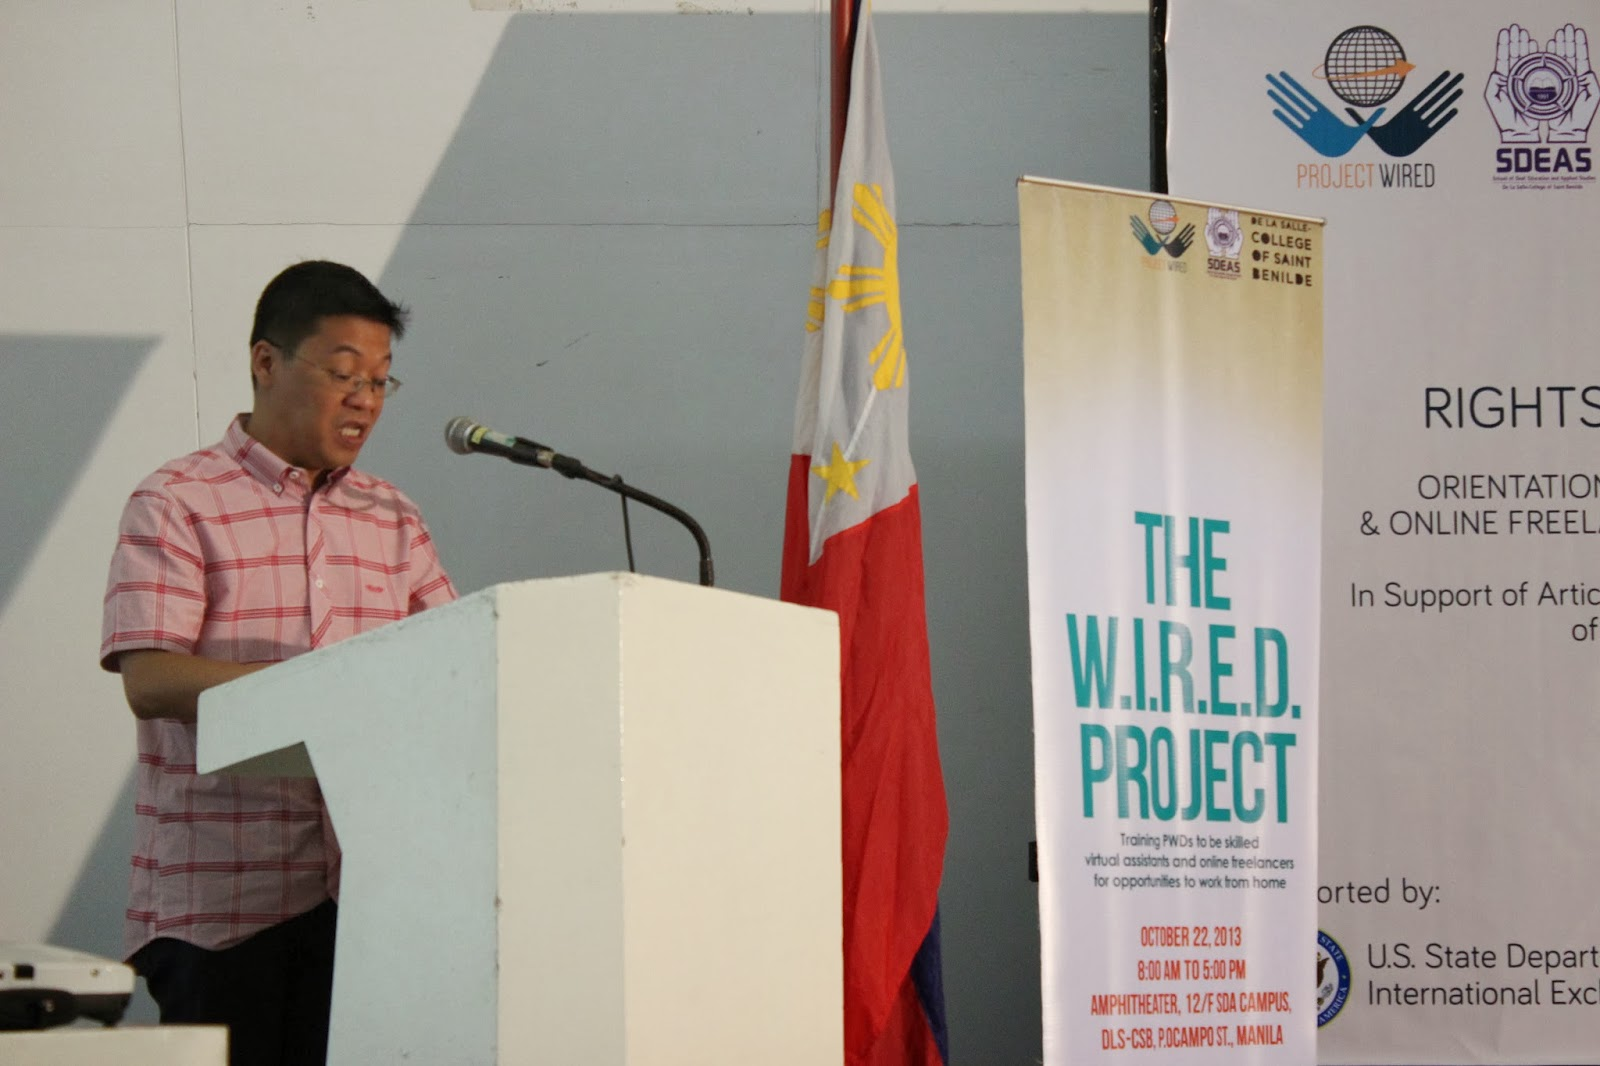 Deaf E-News: Event: The W.I.R.E.D. Project and Seminar on Online ...